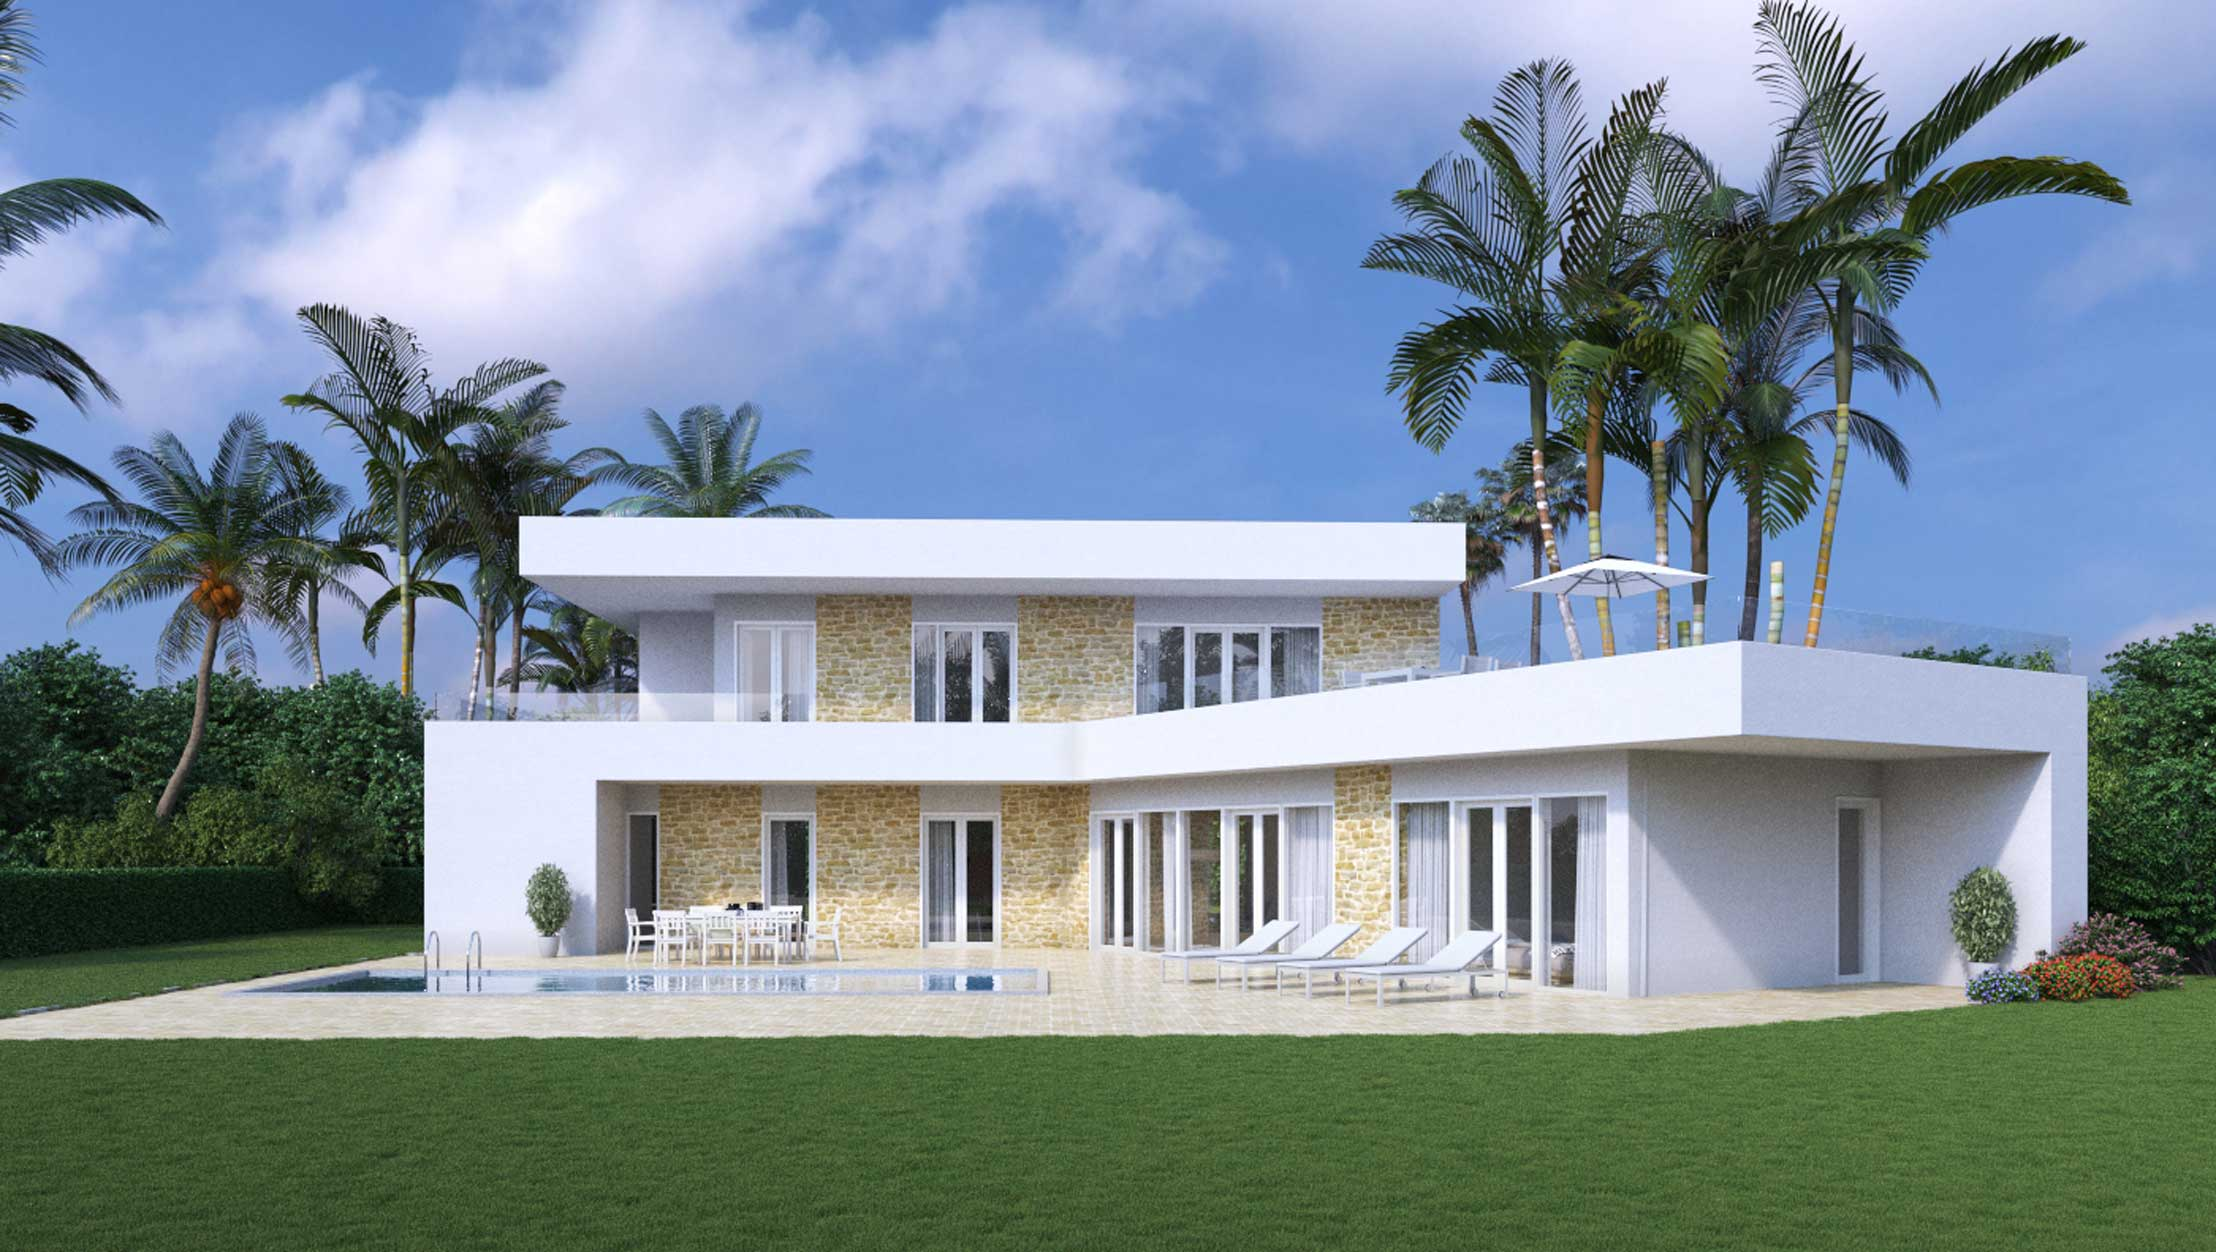 4 Bedrooms Superior Villa - Reference: SV-04